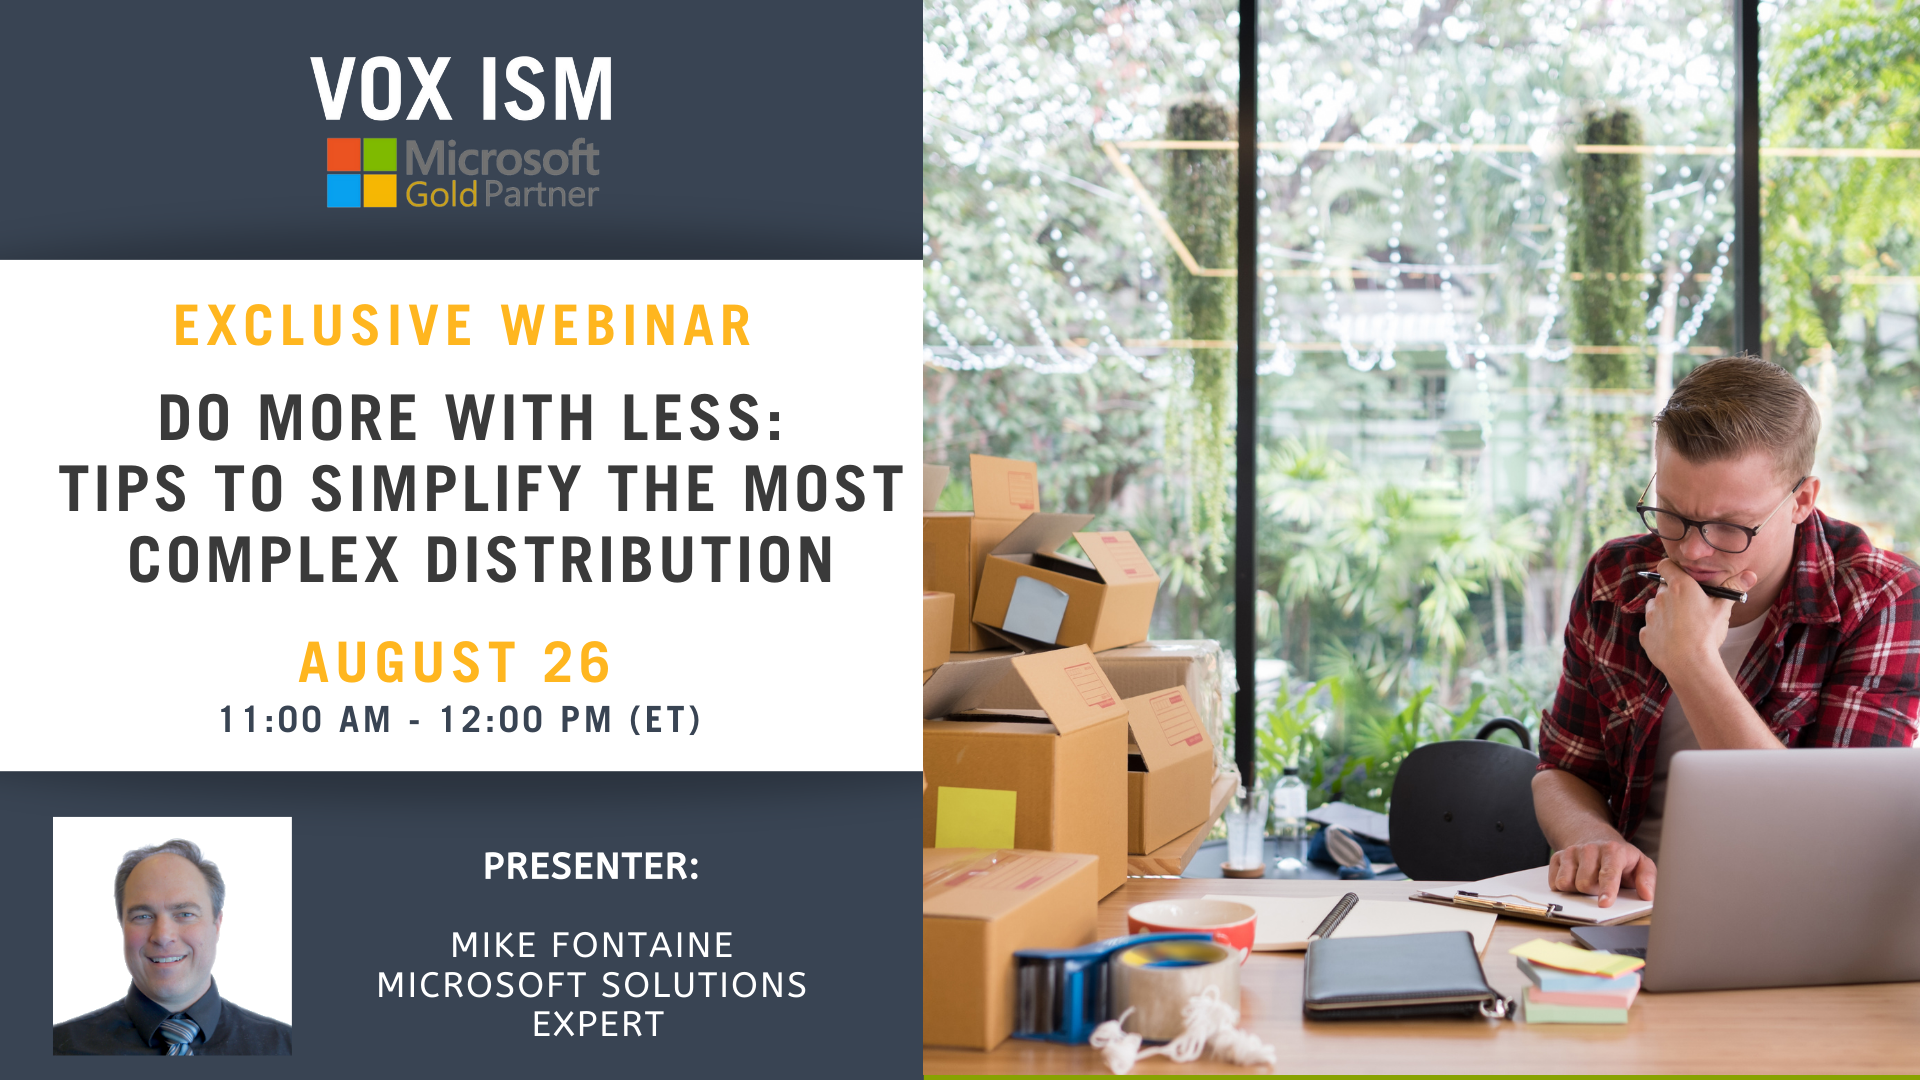 Do More with Less: 6 Tips to Simplify the Most Complex Distribution - August 26 - Webinar